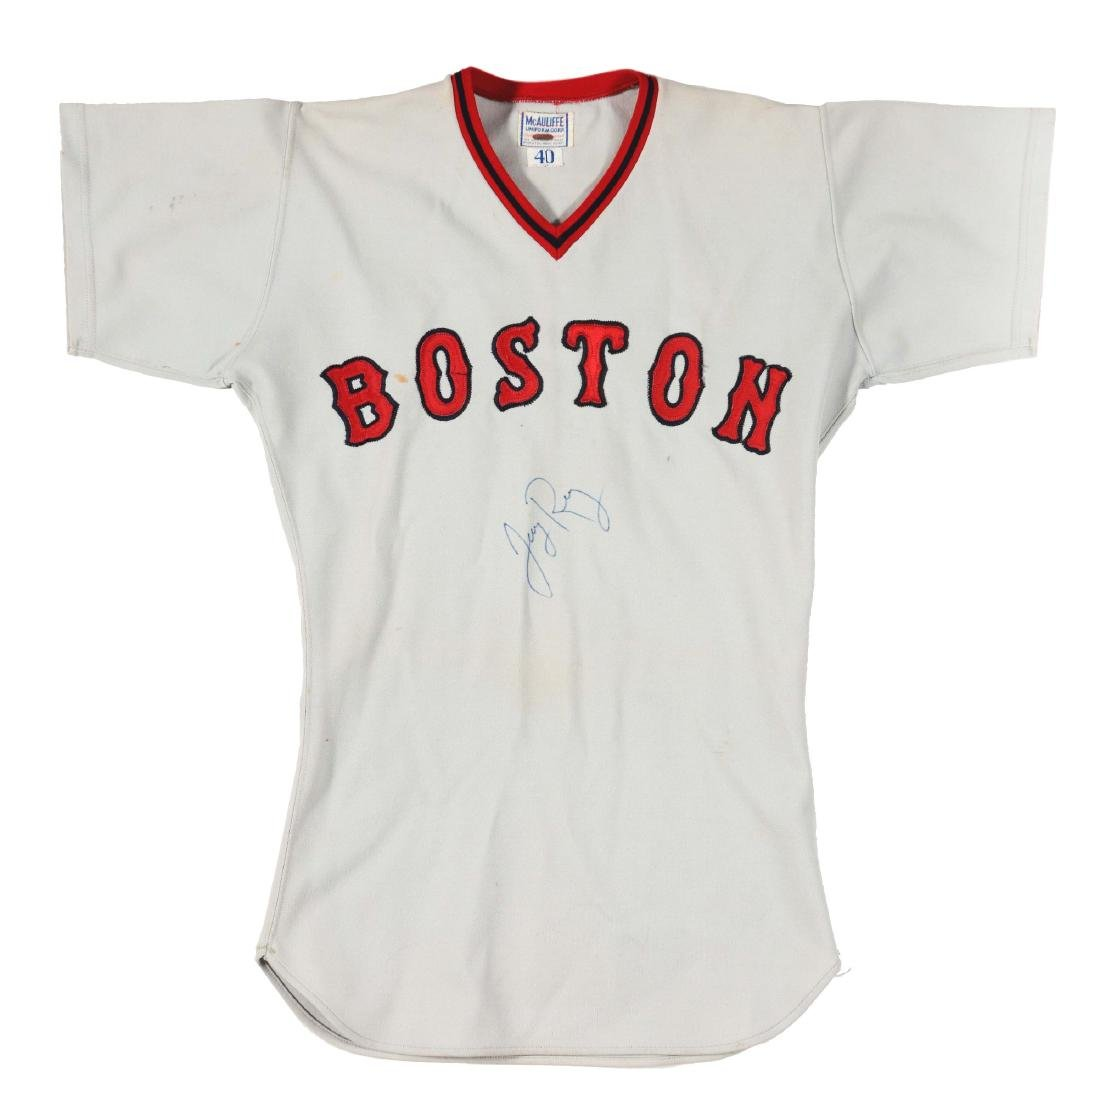 1978 Jerry Remy Game Used Red Sox Road Jersey.